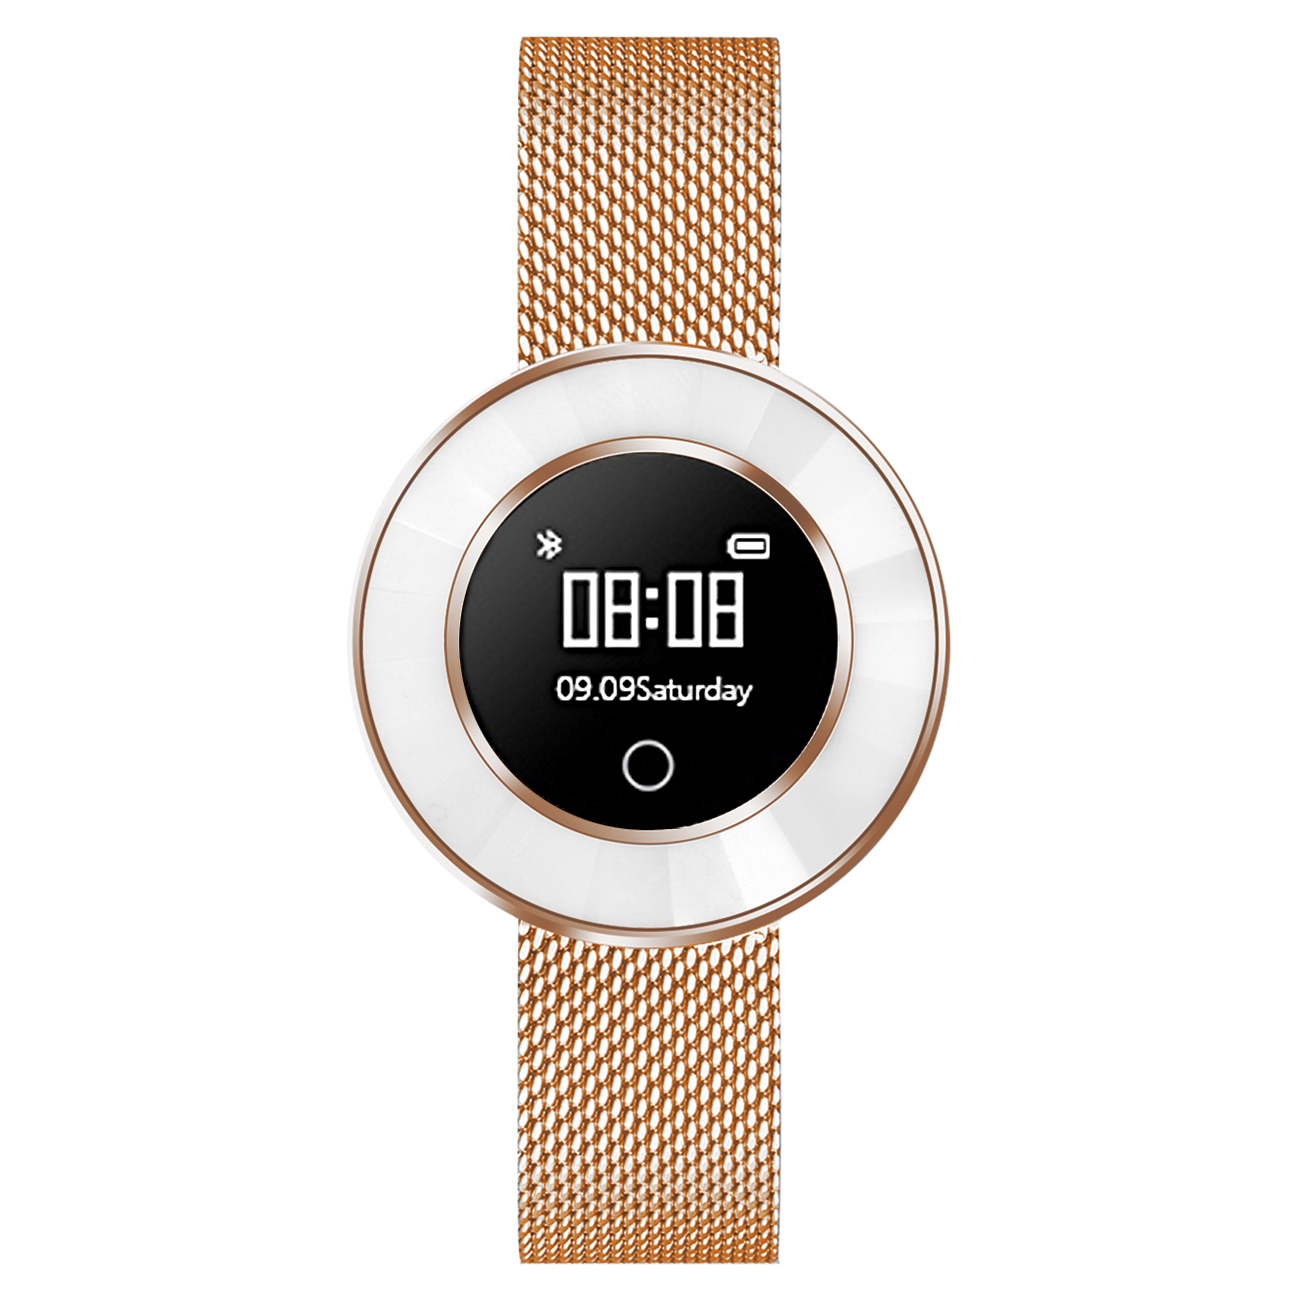 Fitness Tracker, rosé-gold, Mesh-Armband